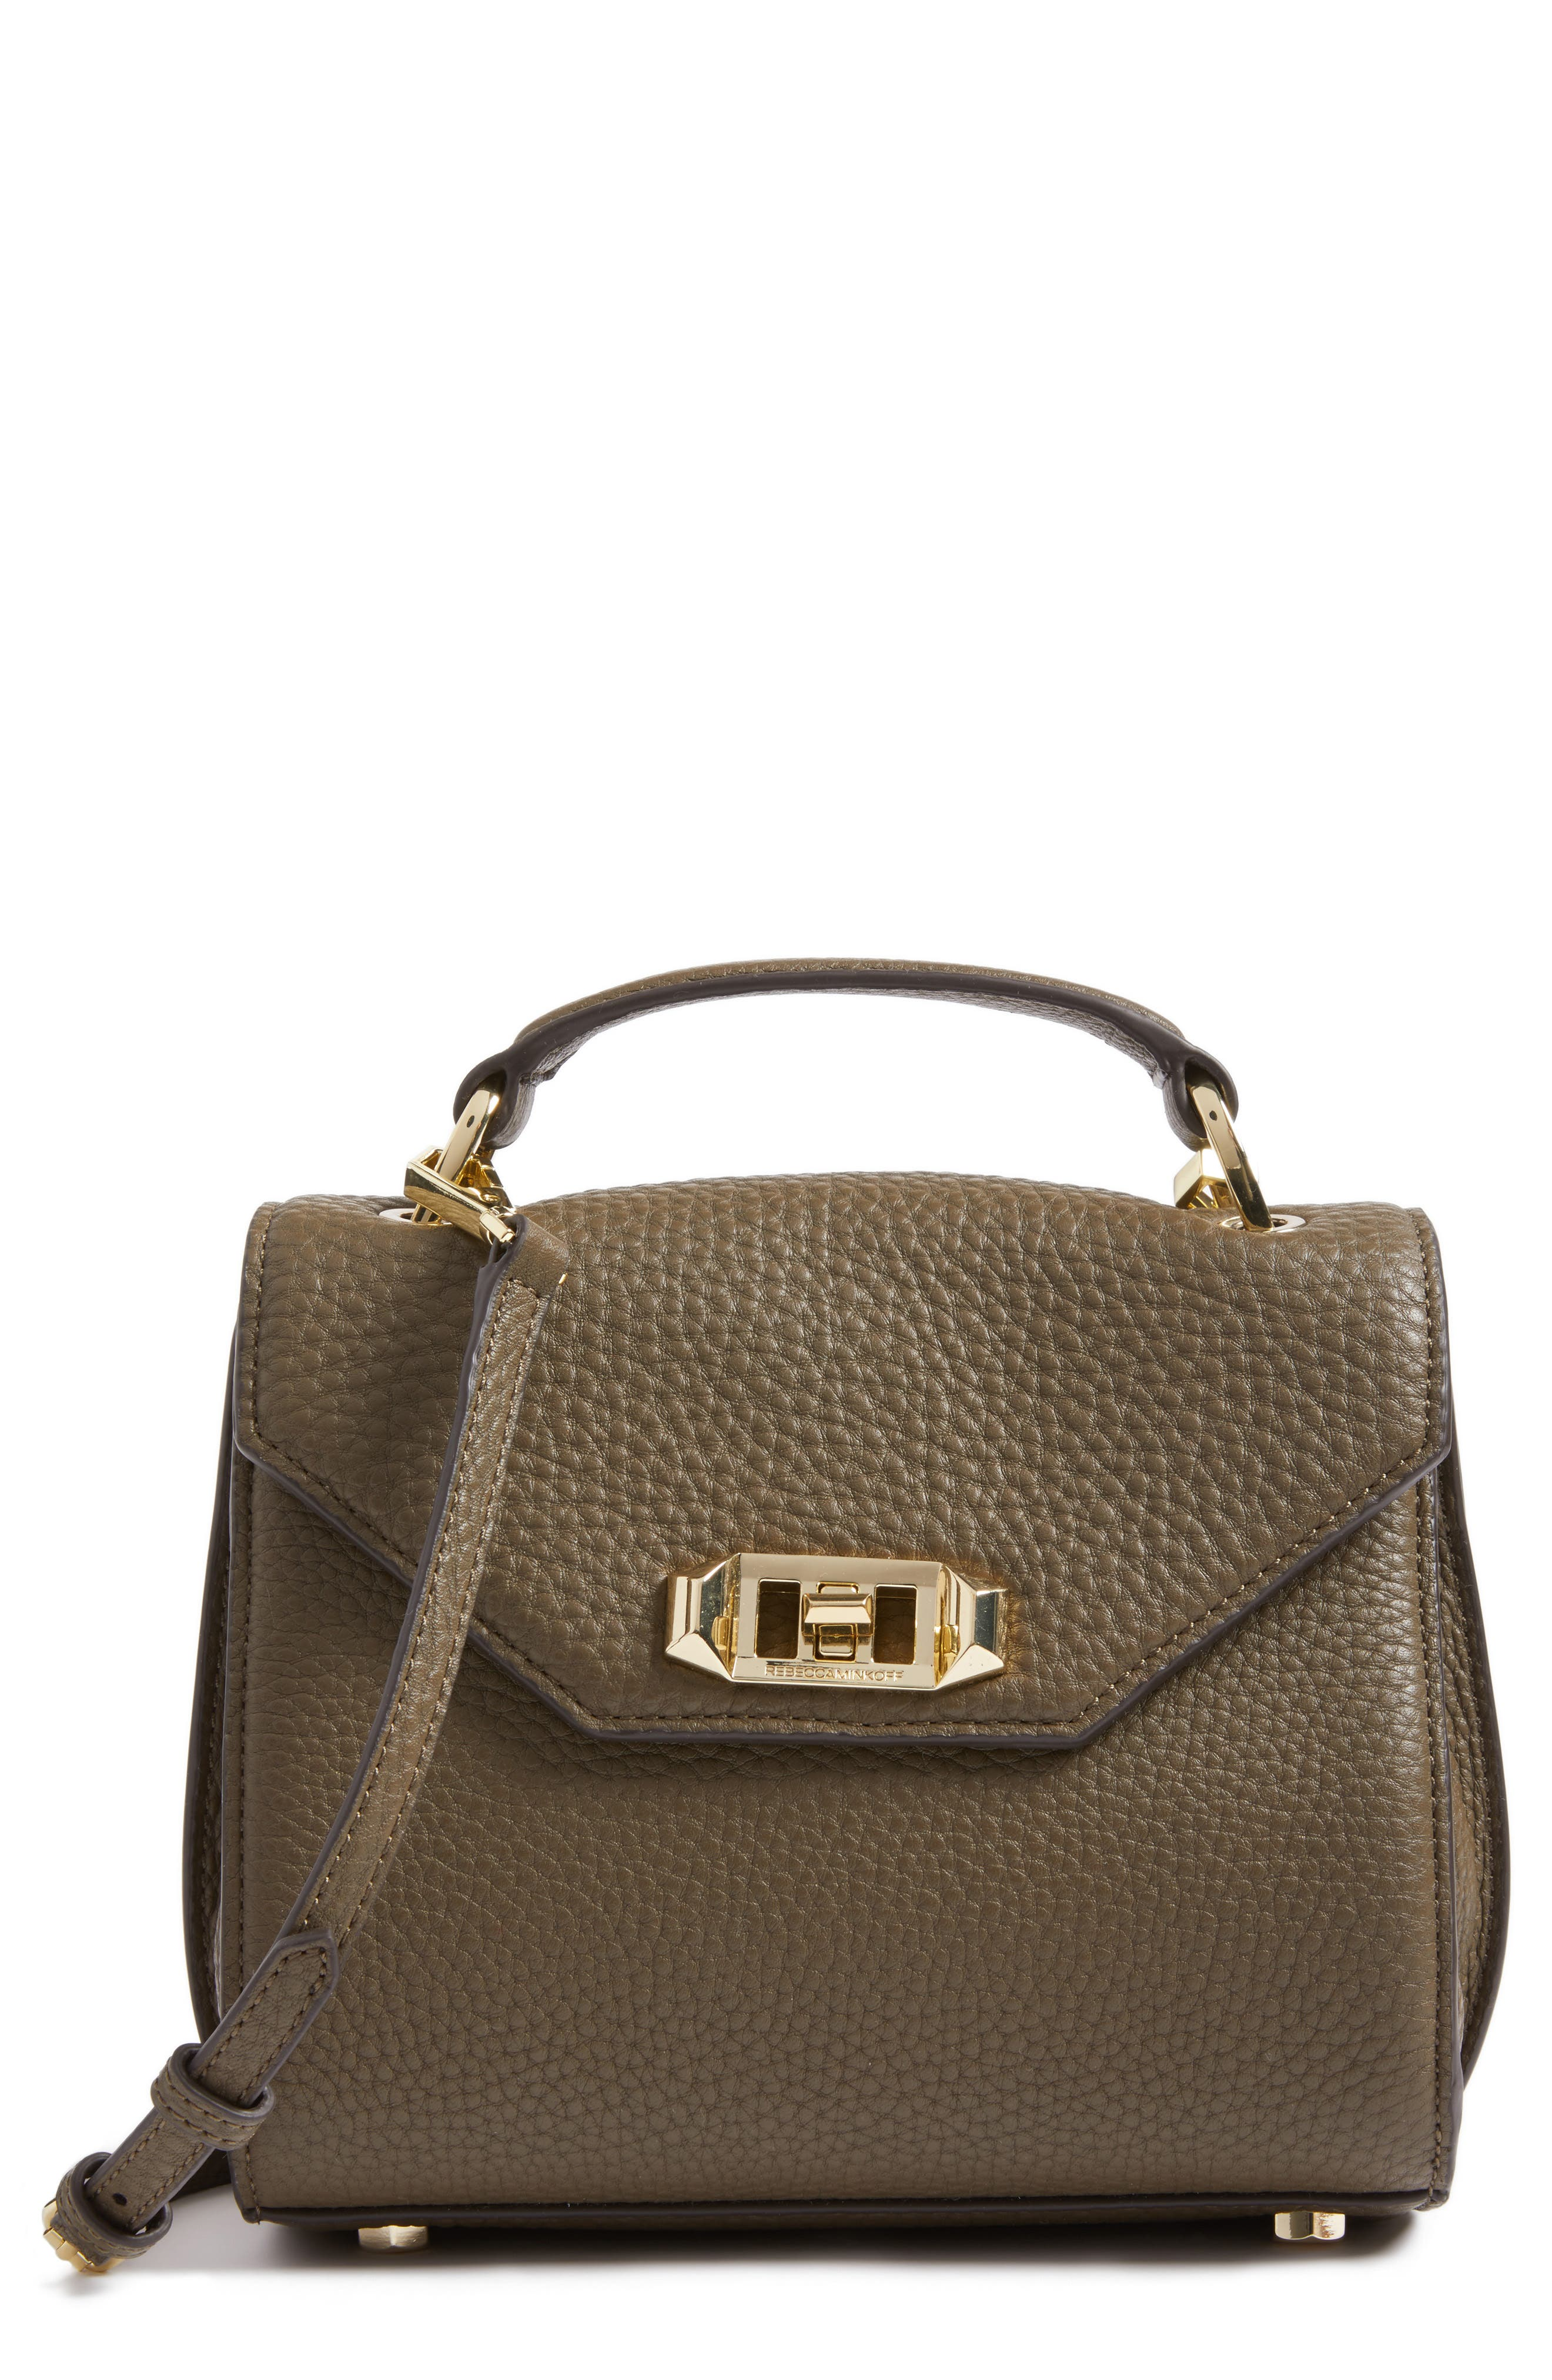 Alternate Image 1 Selected - Rebecca Minkoff Top Handle Leather Satchel (Nordstrom Exclusive)